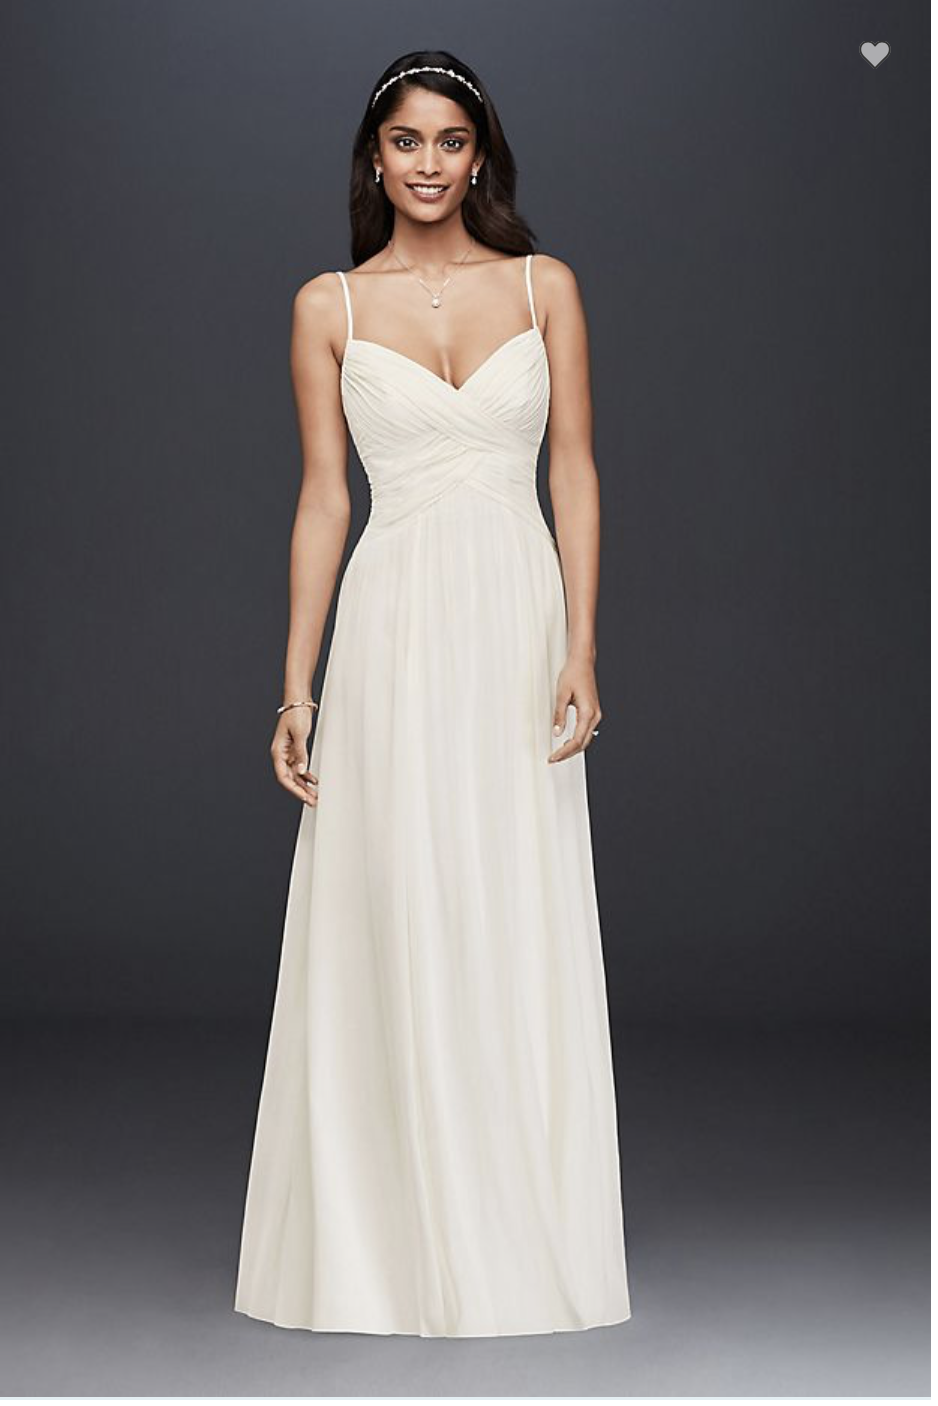 David's Bridal - David's Bridal Ruched Bodice Chiffon A-line Wedding Dress W/ Dress Bag